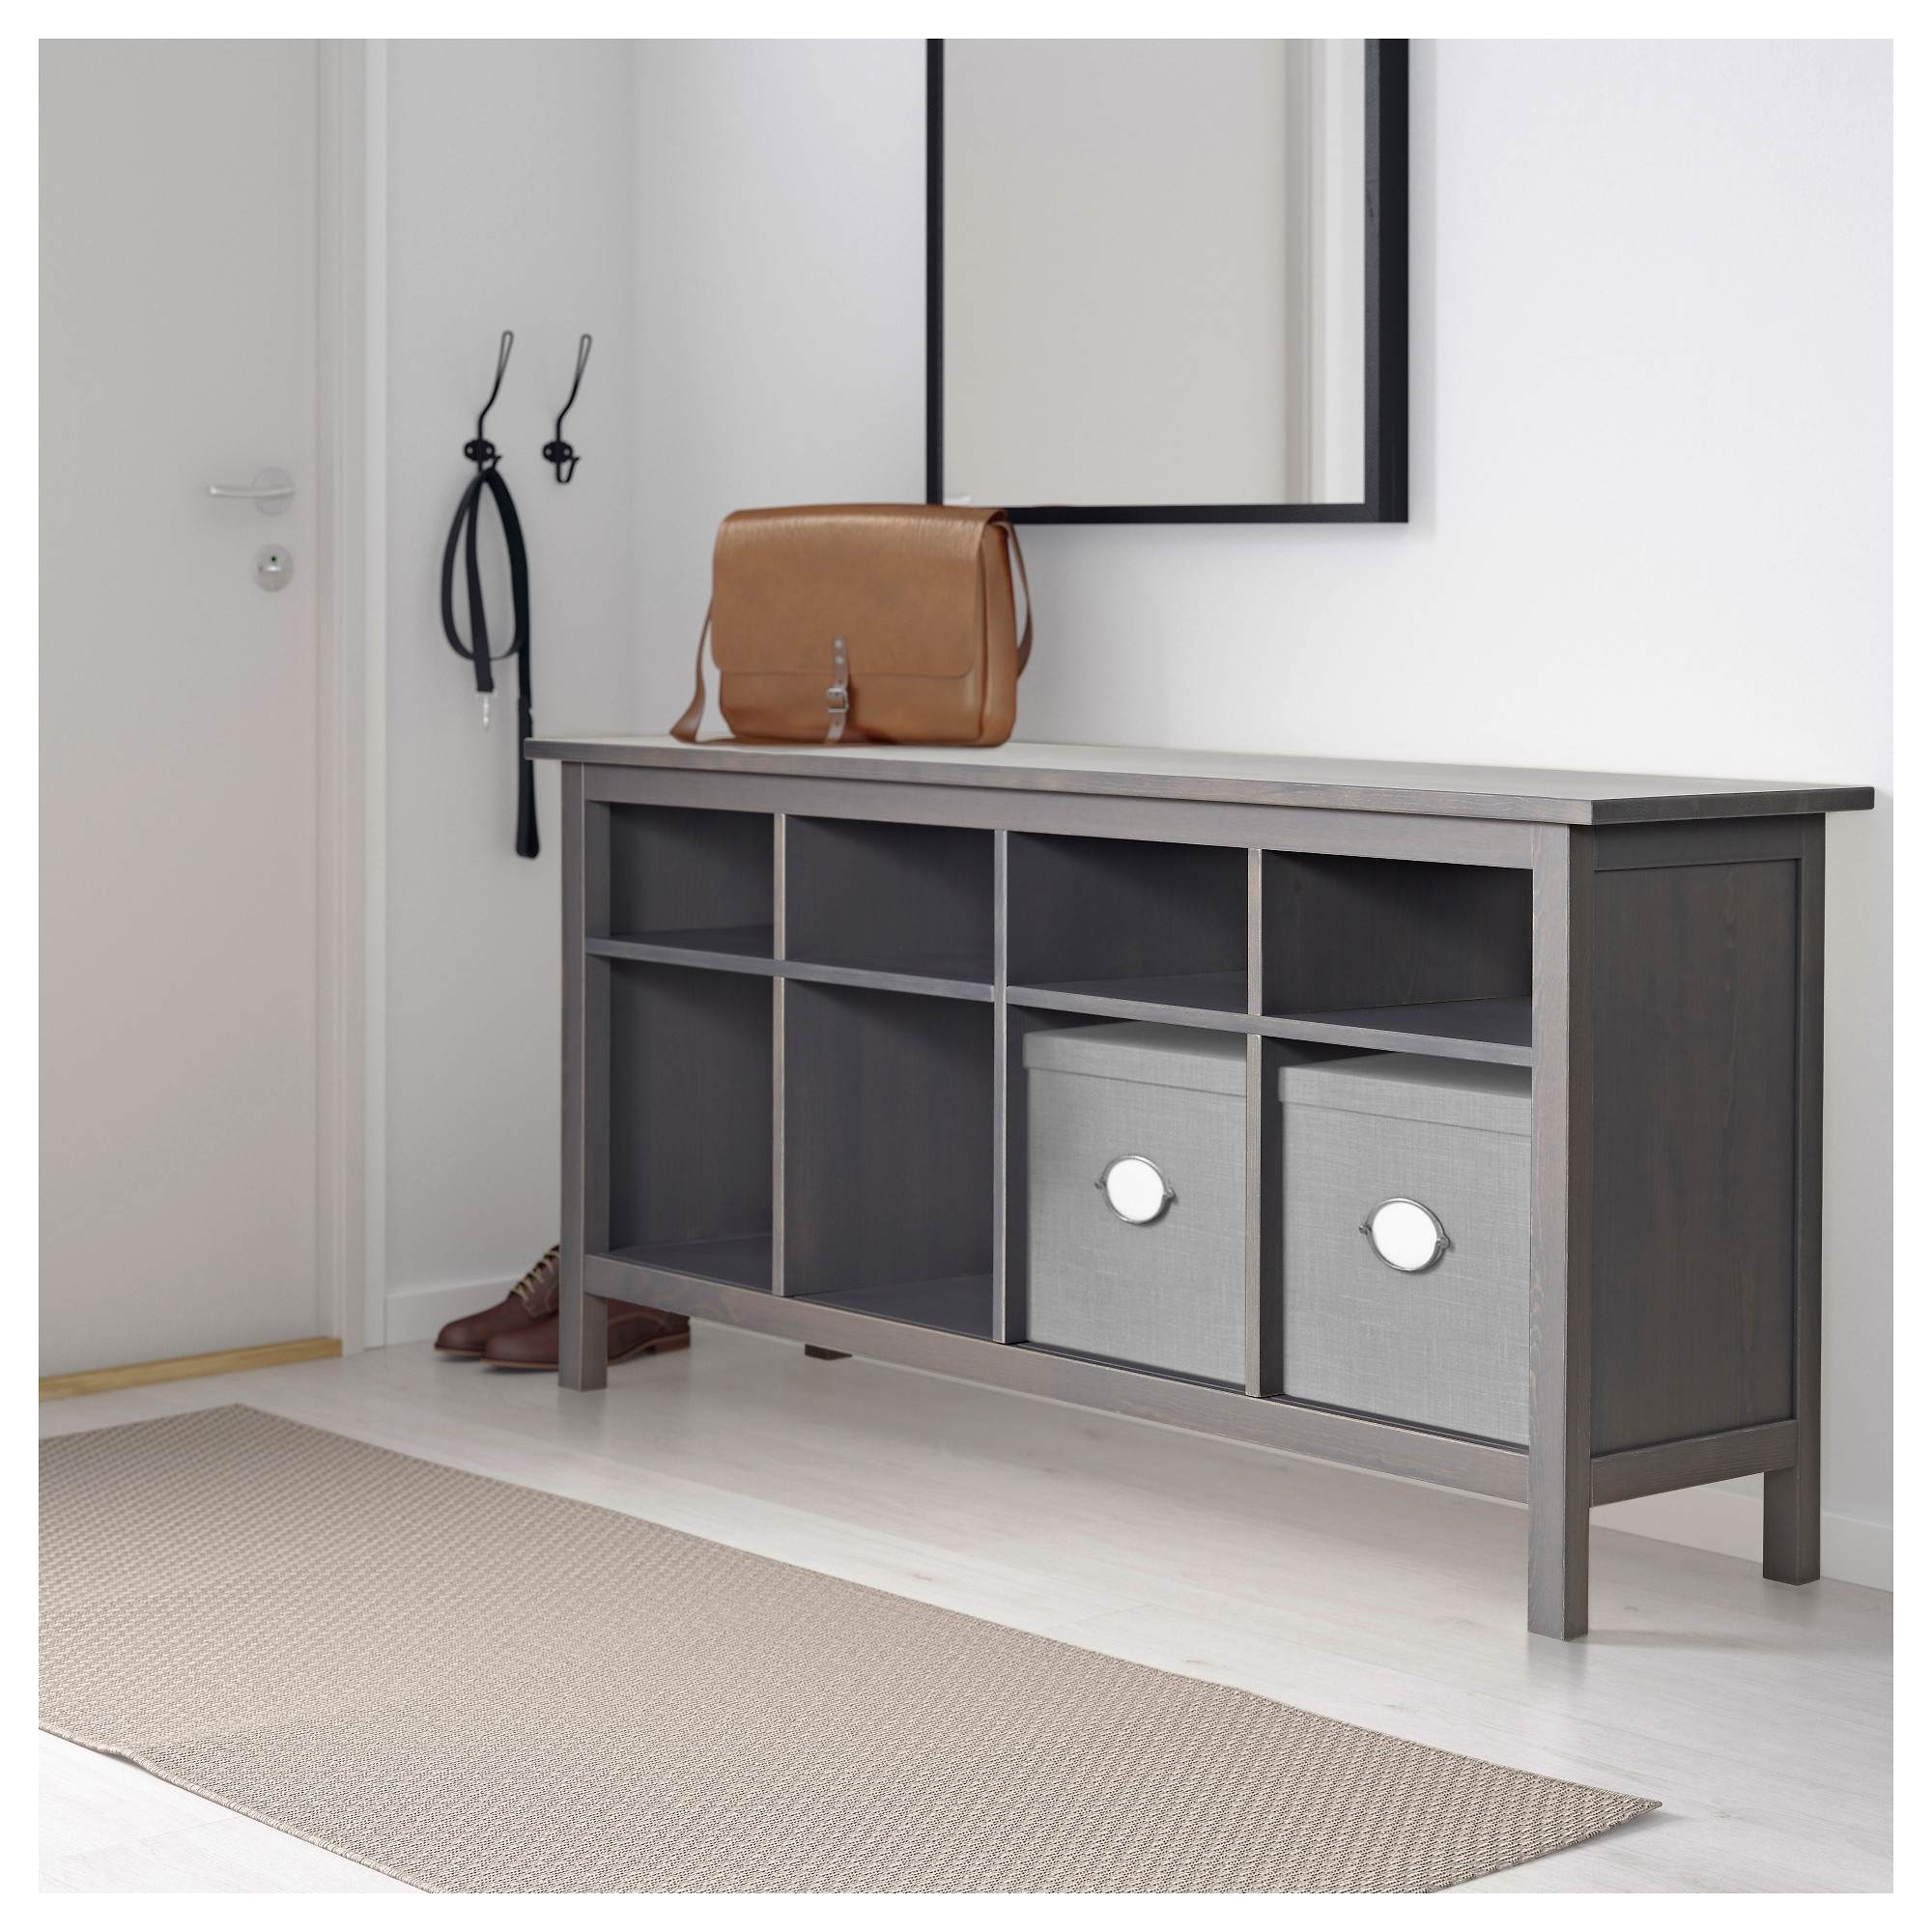 Remarkable Hemnes Sofa Table Compartment Sizes Madison Art Center Design Caraccident5 Cool Chair Designs And Ideas Caraccident5Info